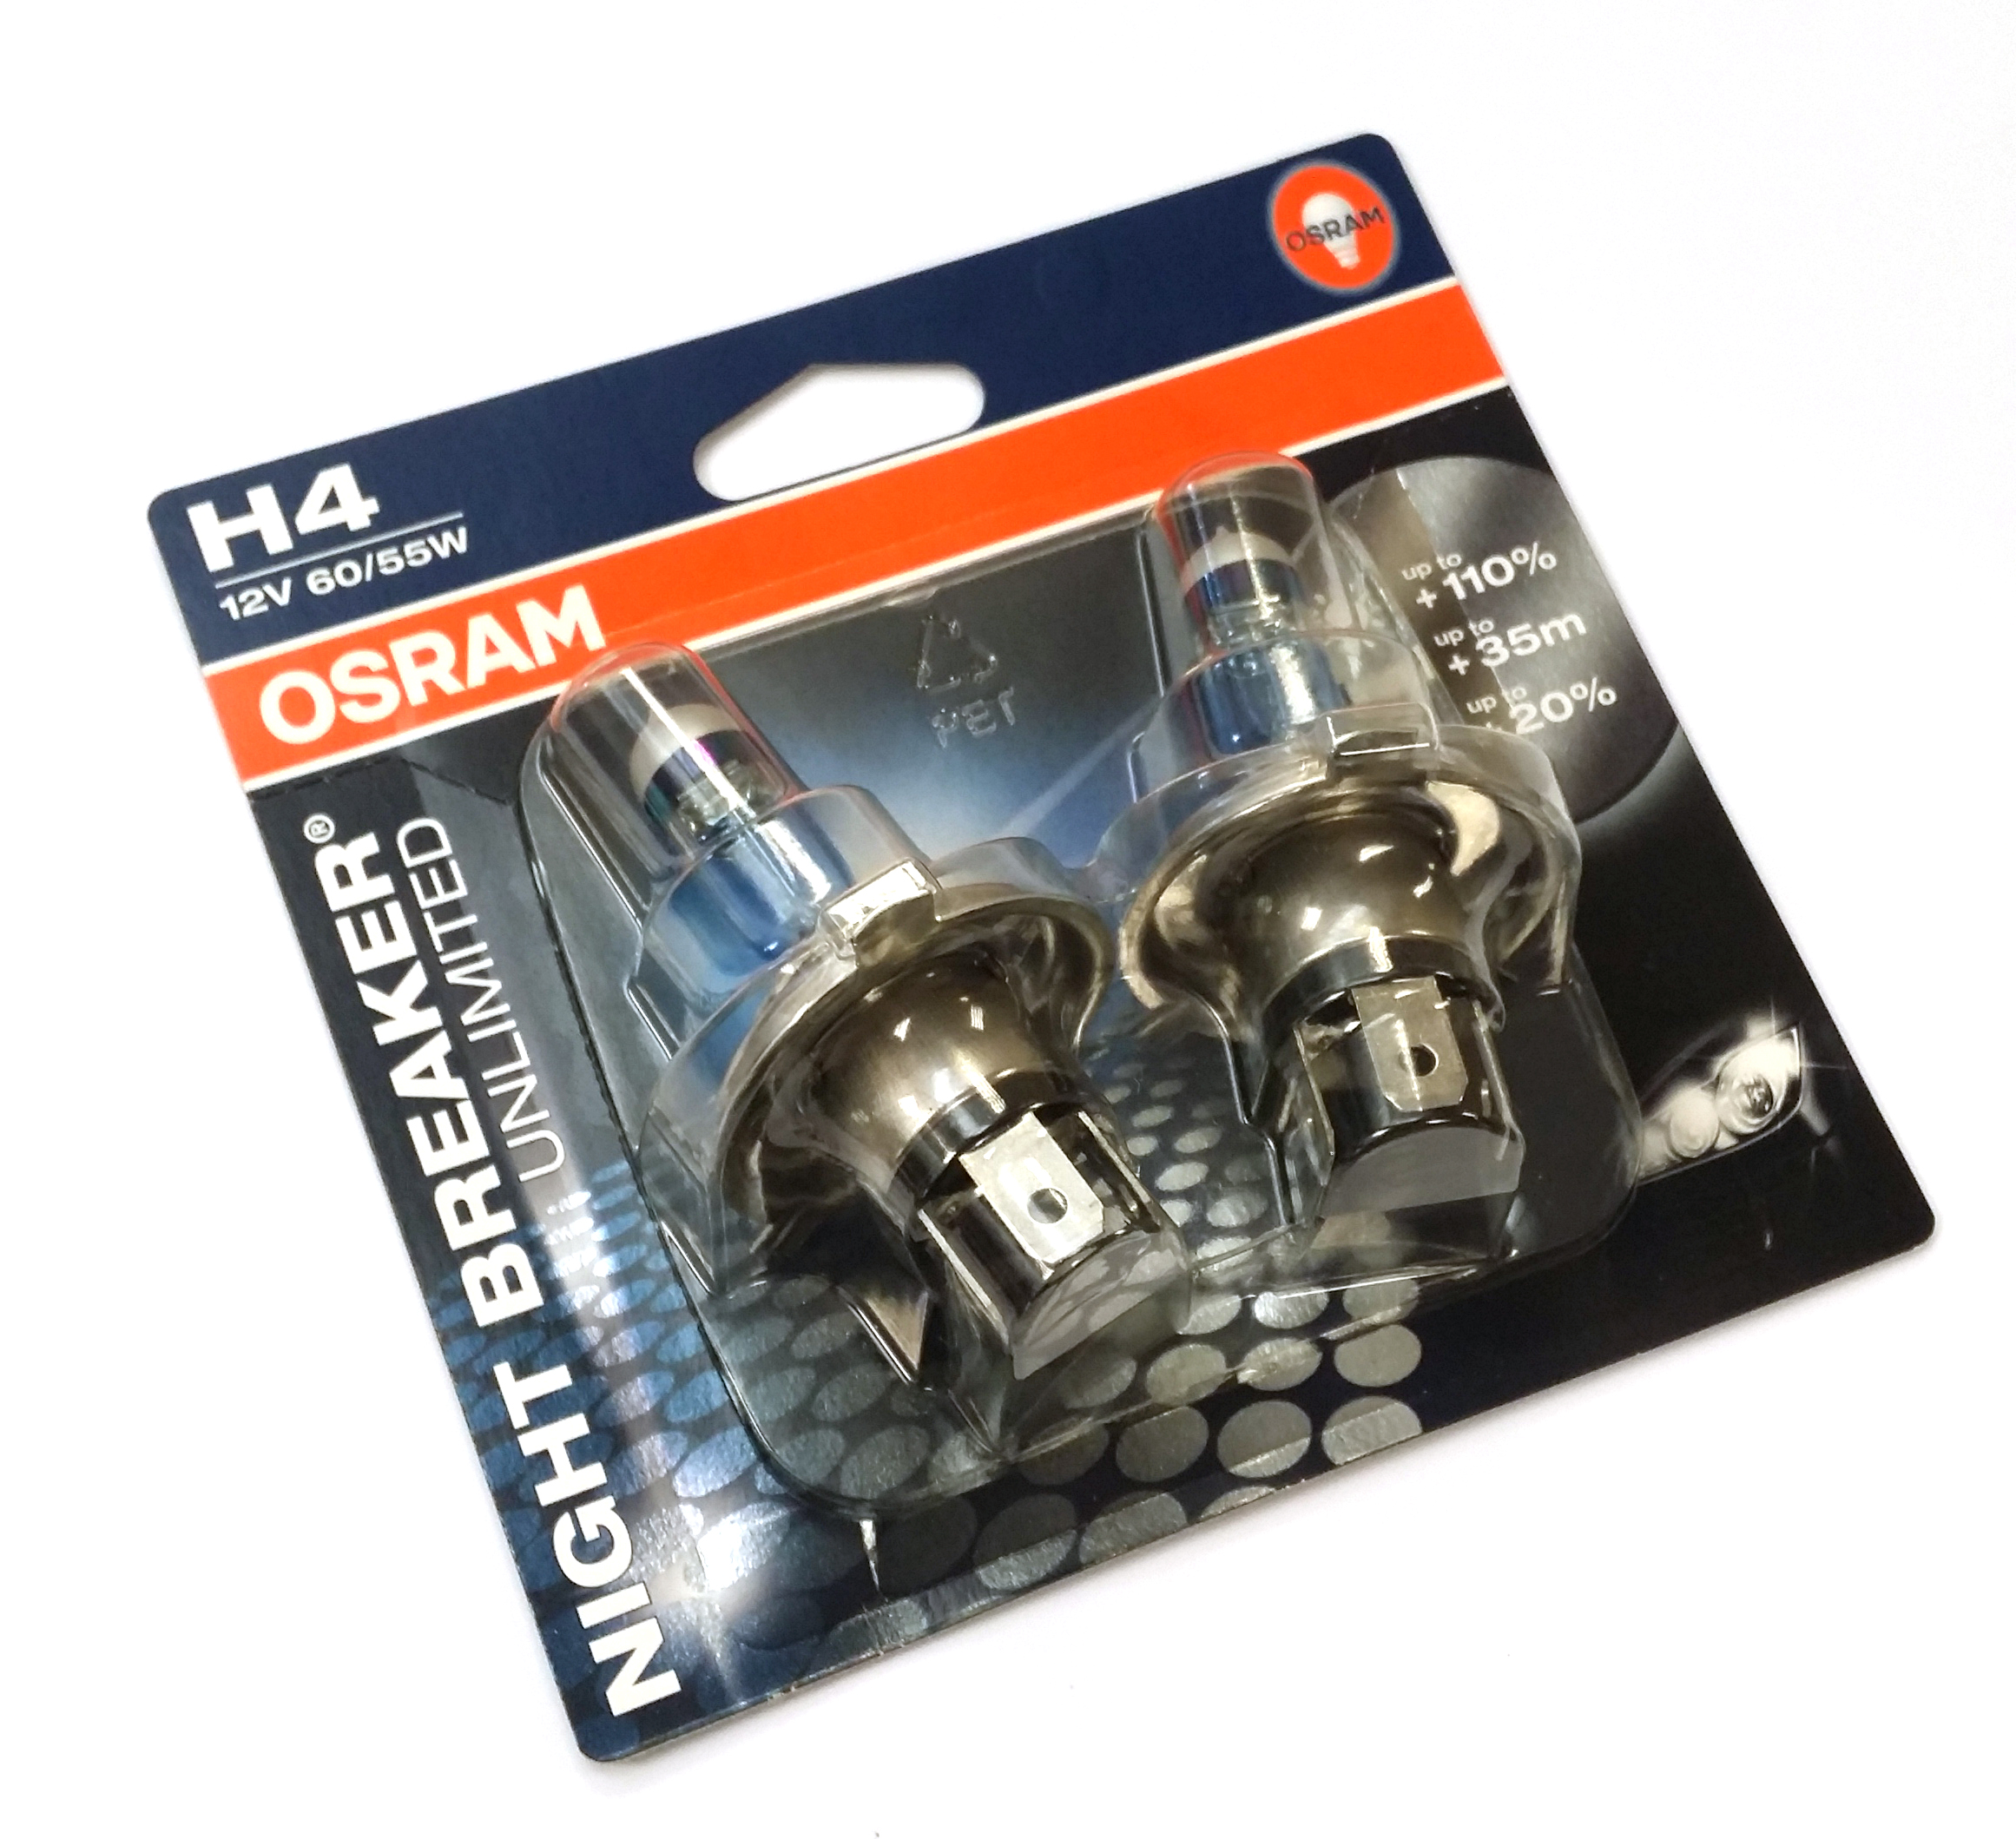 osram h4 nightbreaker unlimited headlight bulbs twin pack plus more 110 light ebay. Black Bedroom Furniture Sets. Home Design Ideas